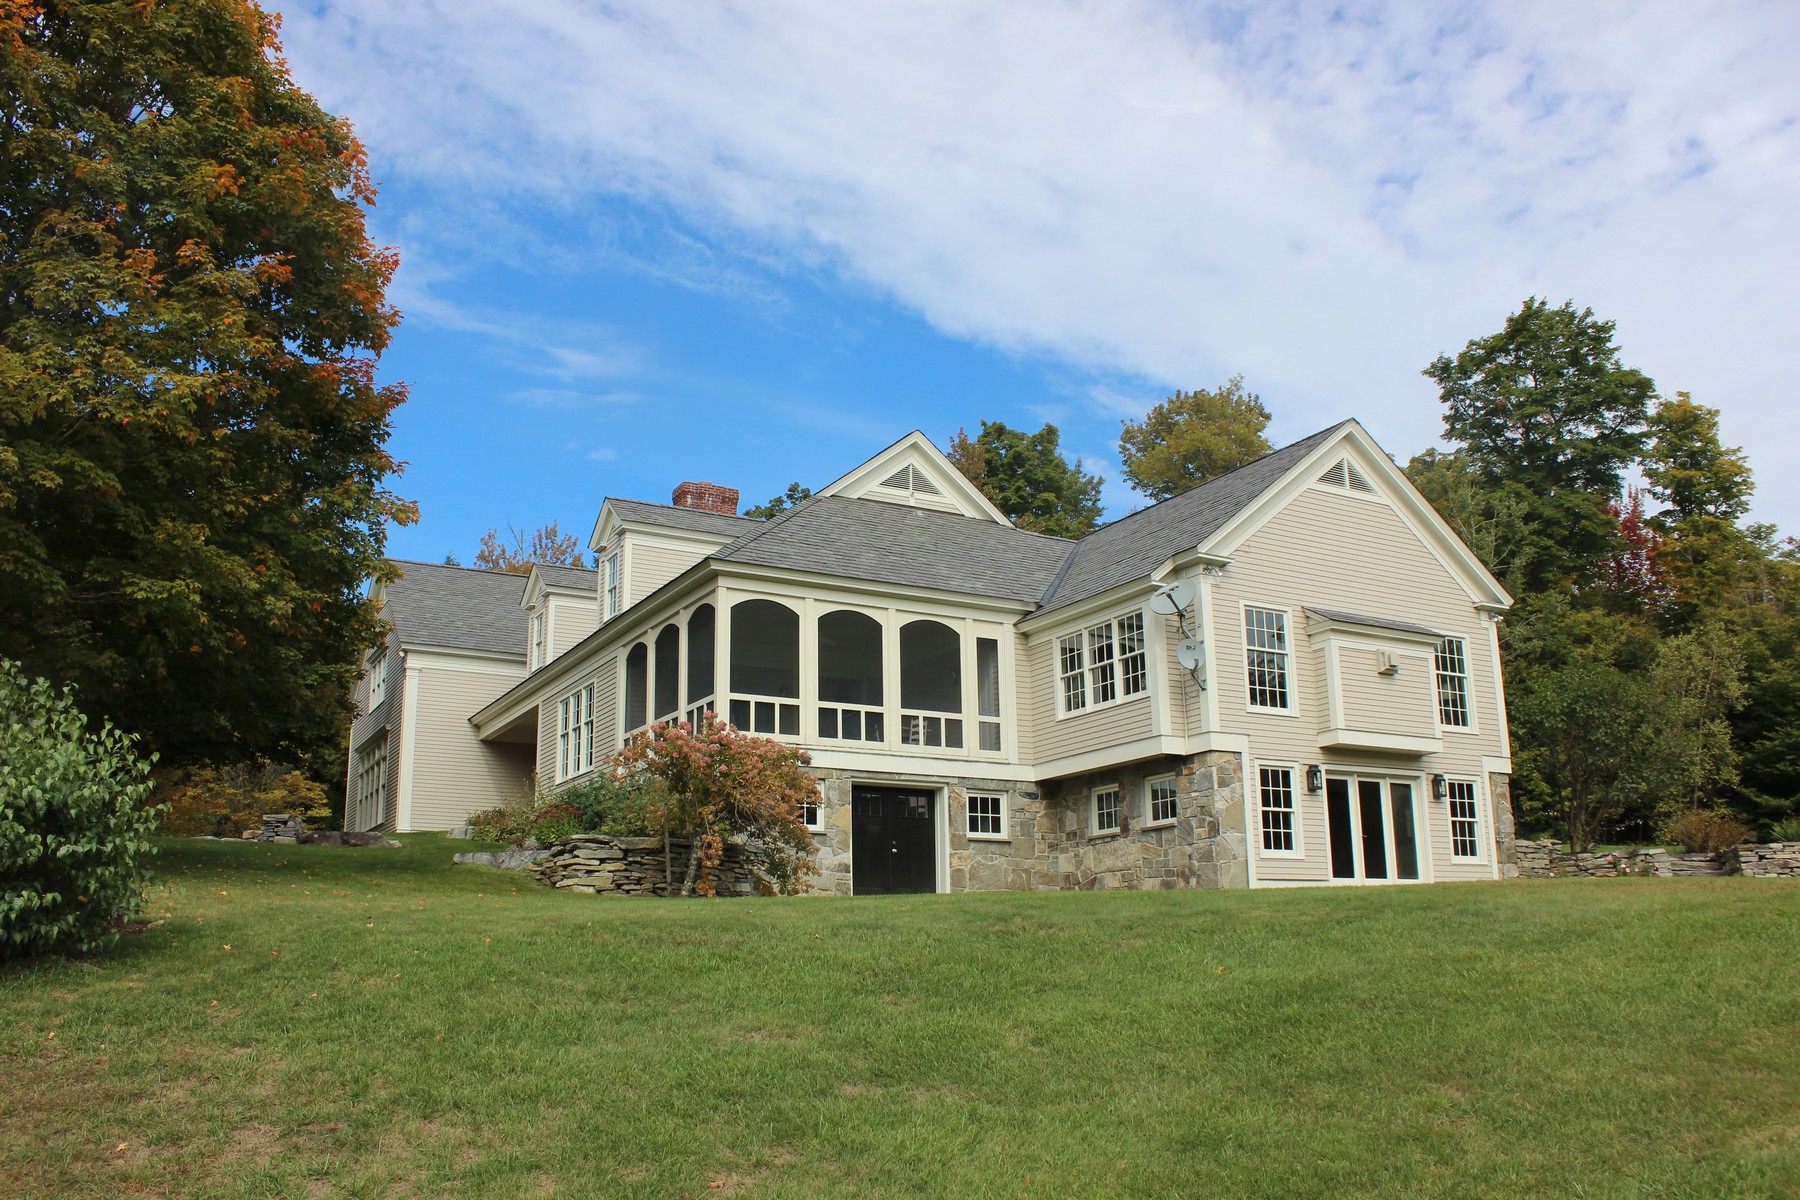 Single Family Home for Sale at 1426 Goodaleville Rd, Londonderry Londonderry, Vermont, 05155 United States